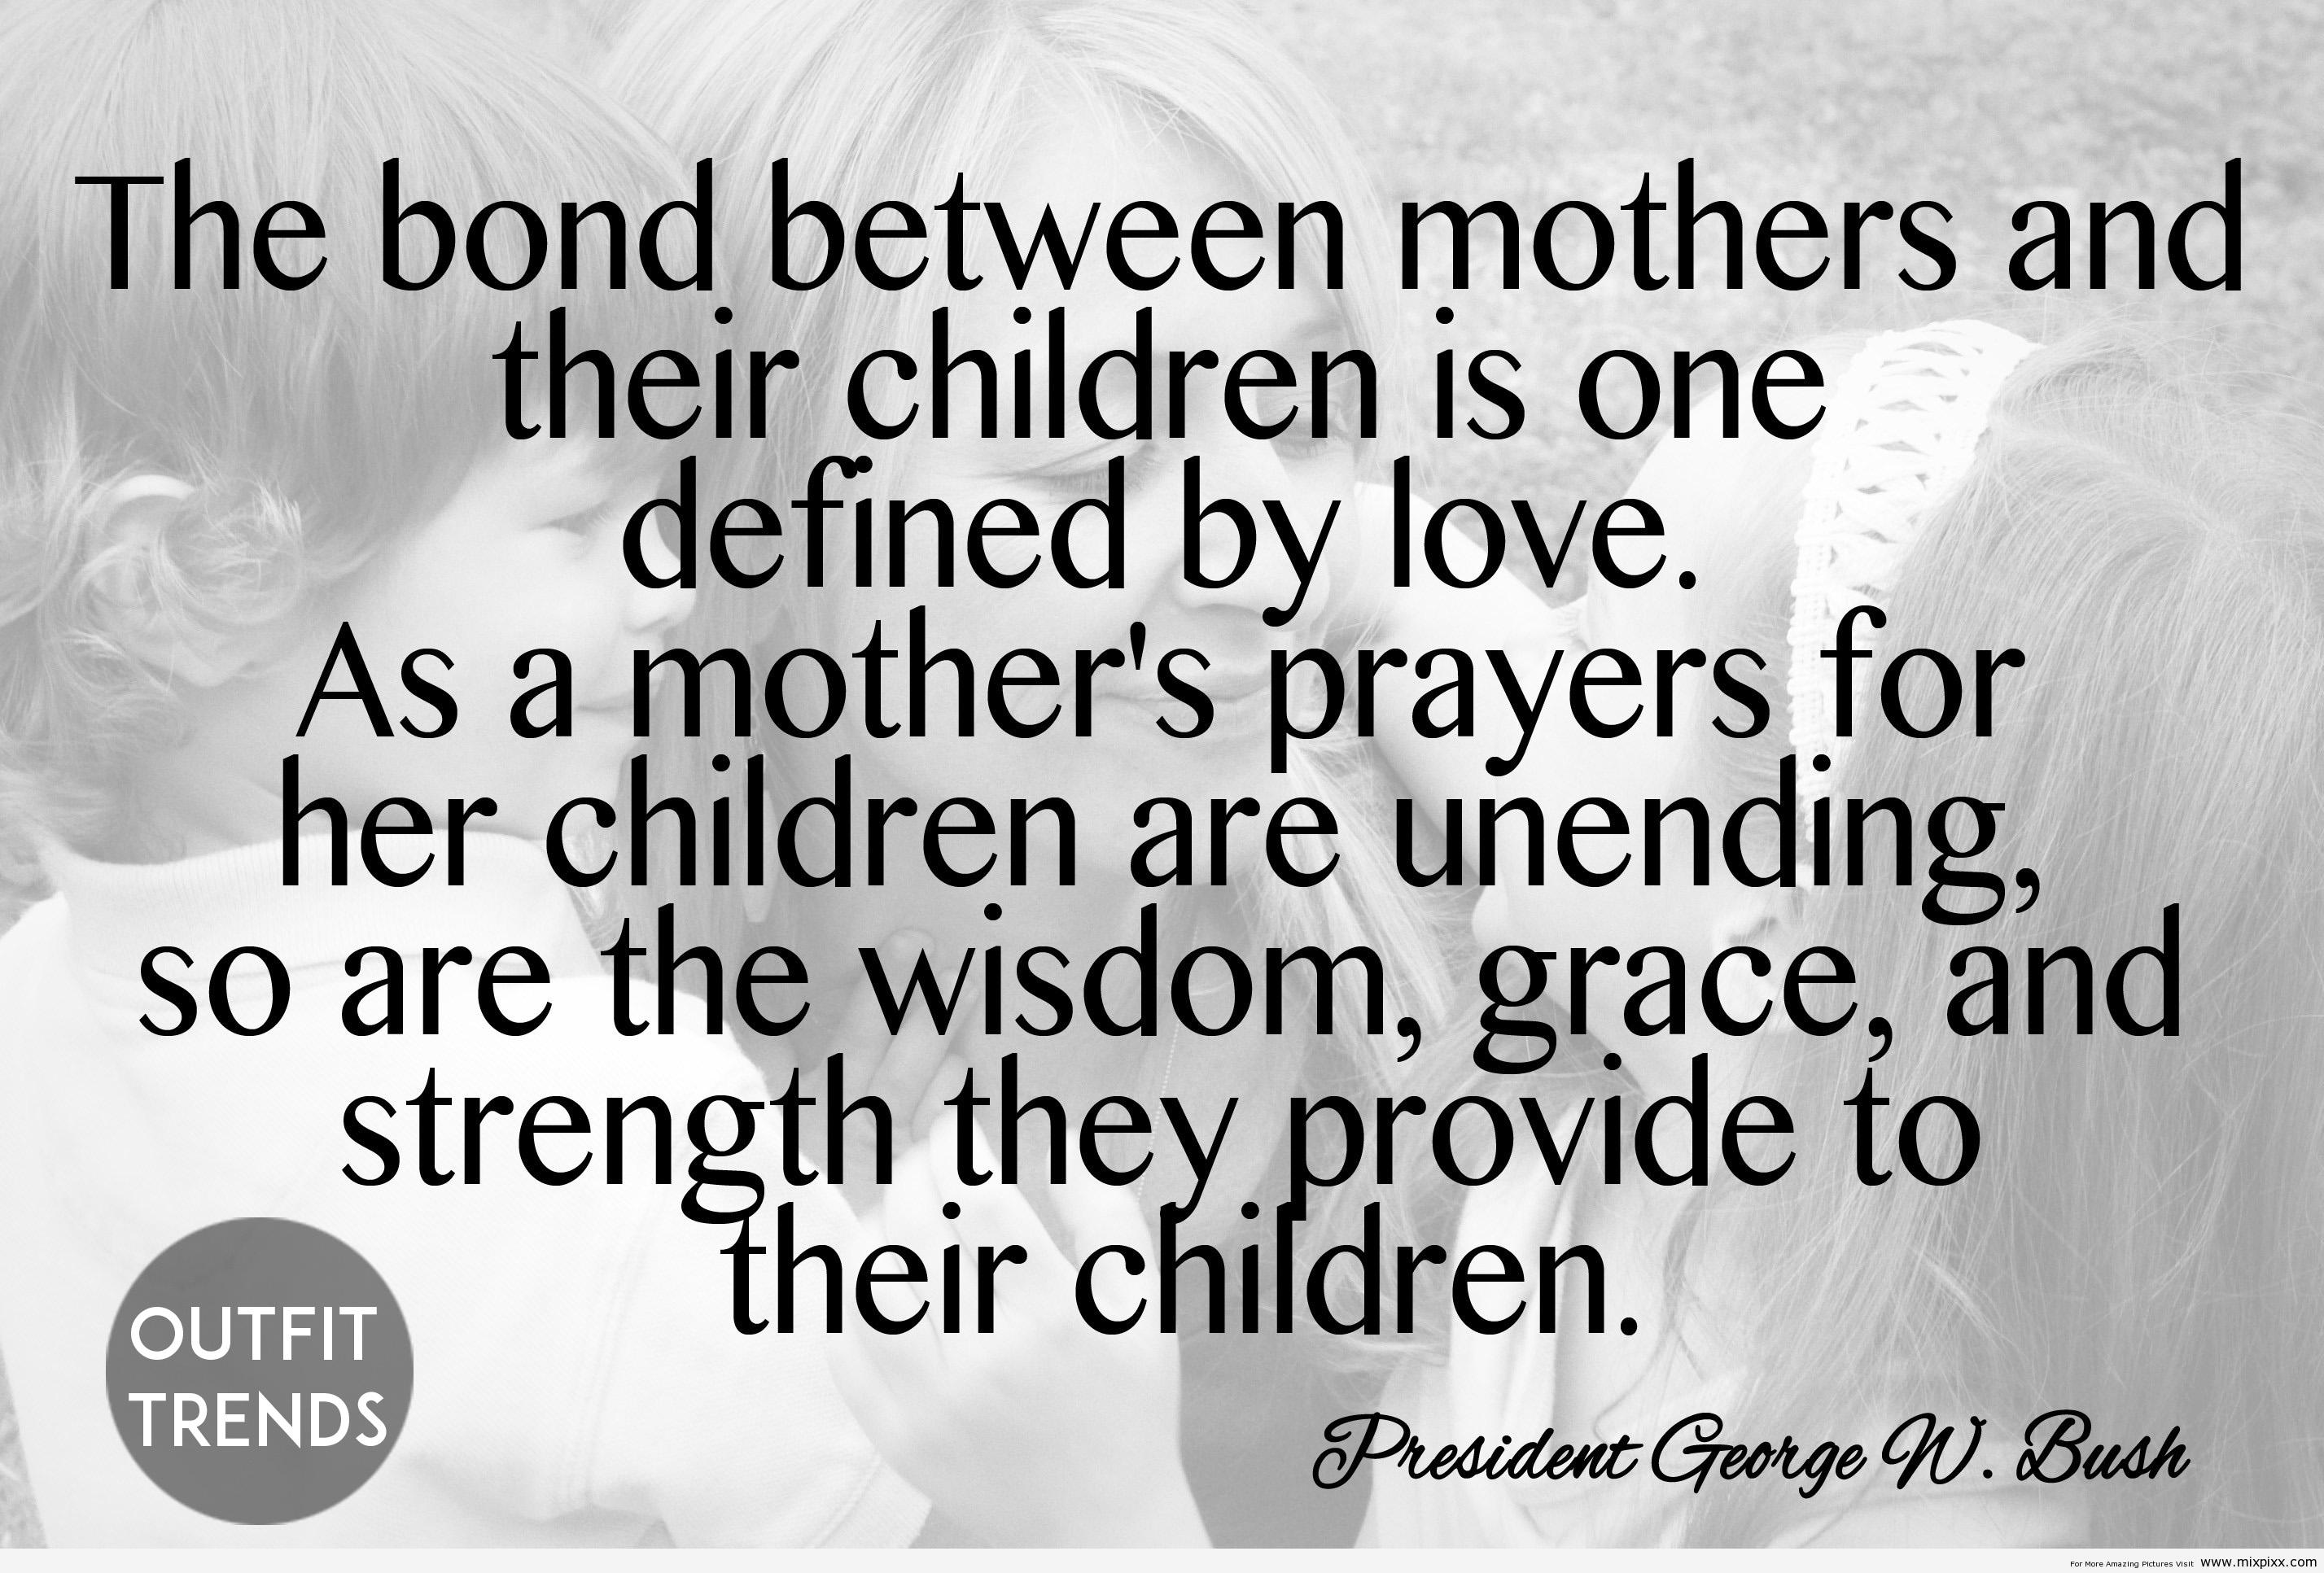 Mother Love Quotes 50 Quotes About Mothersislamic And General Quotes On Mothers